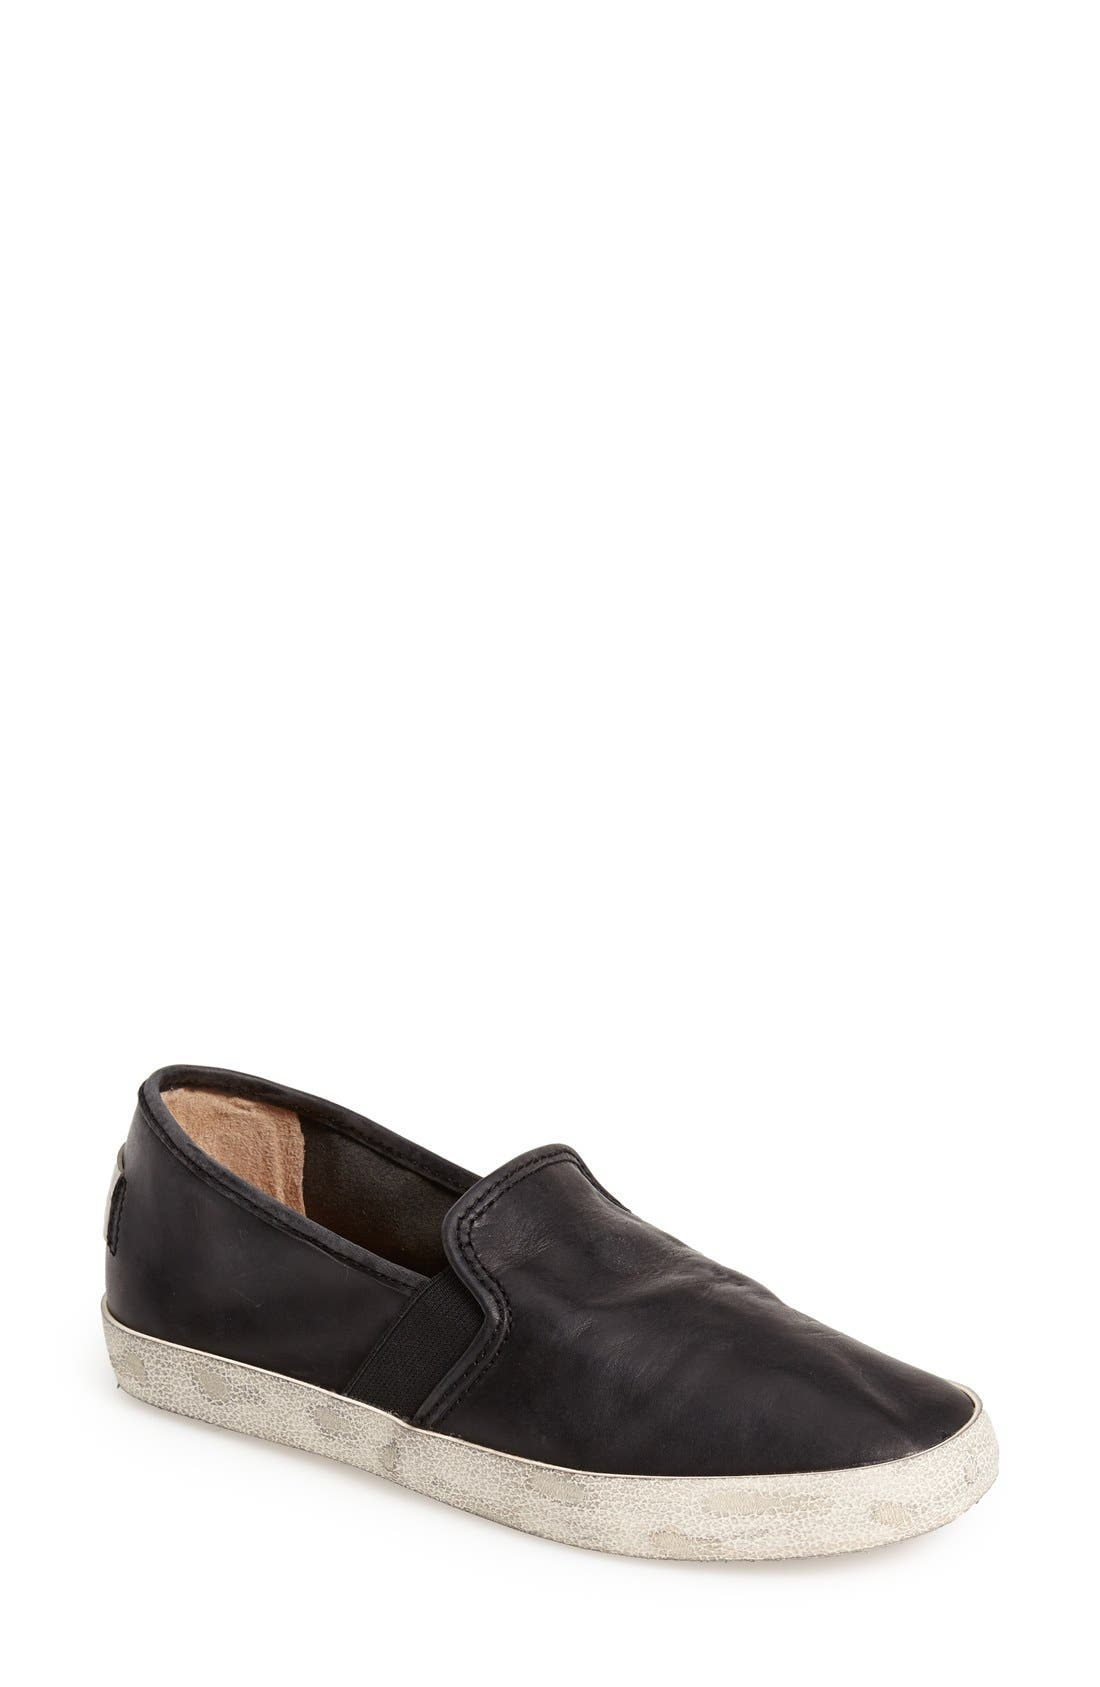 'Dylan' Leather Slip-On Sneaker, Main, color, 001